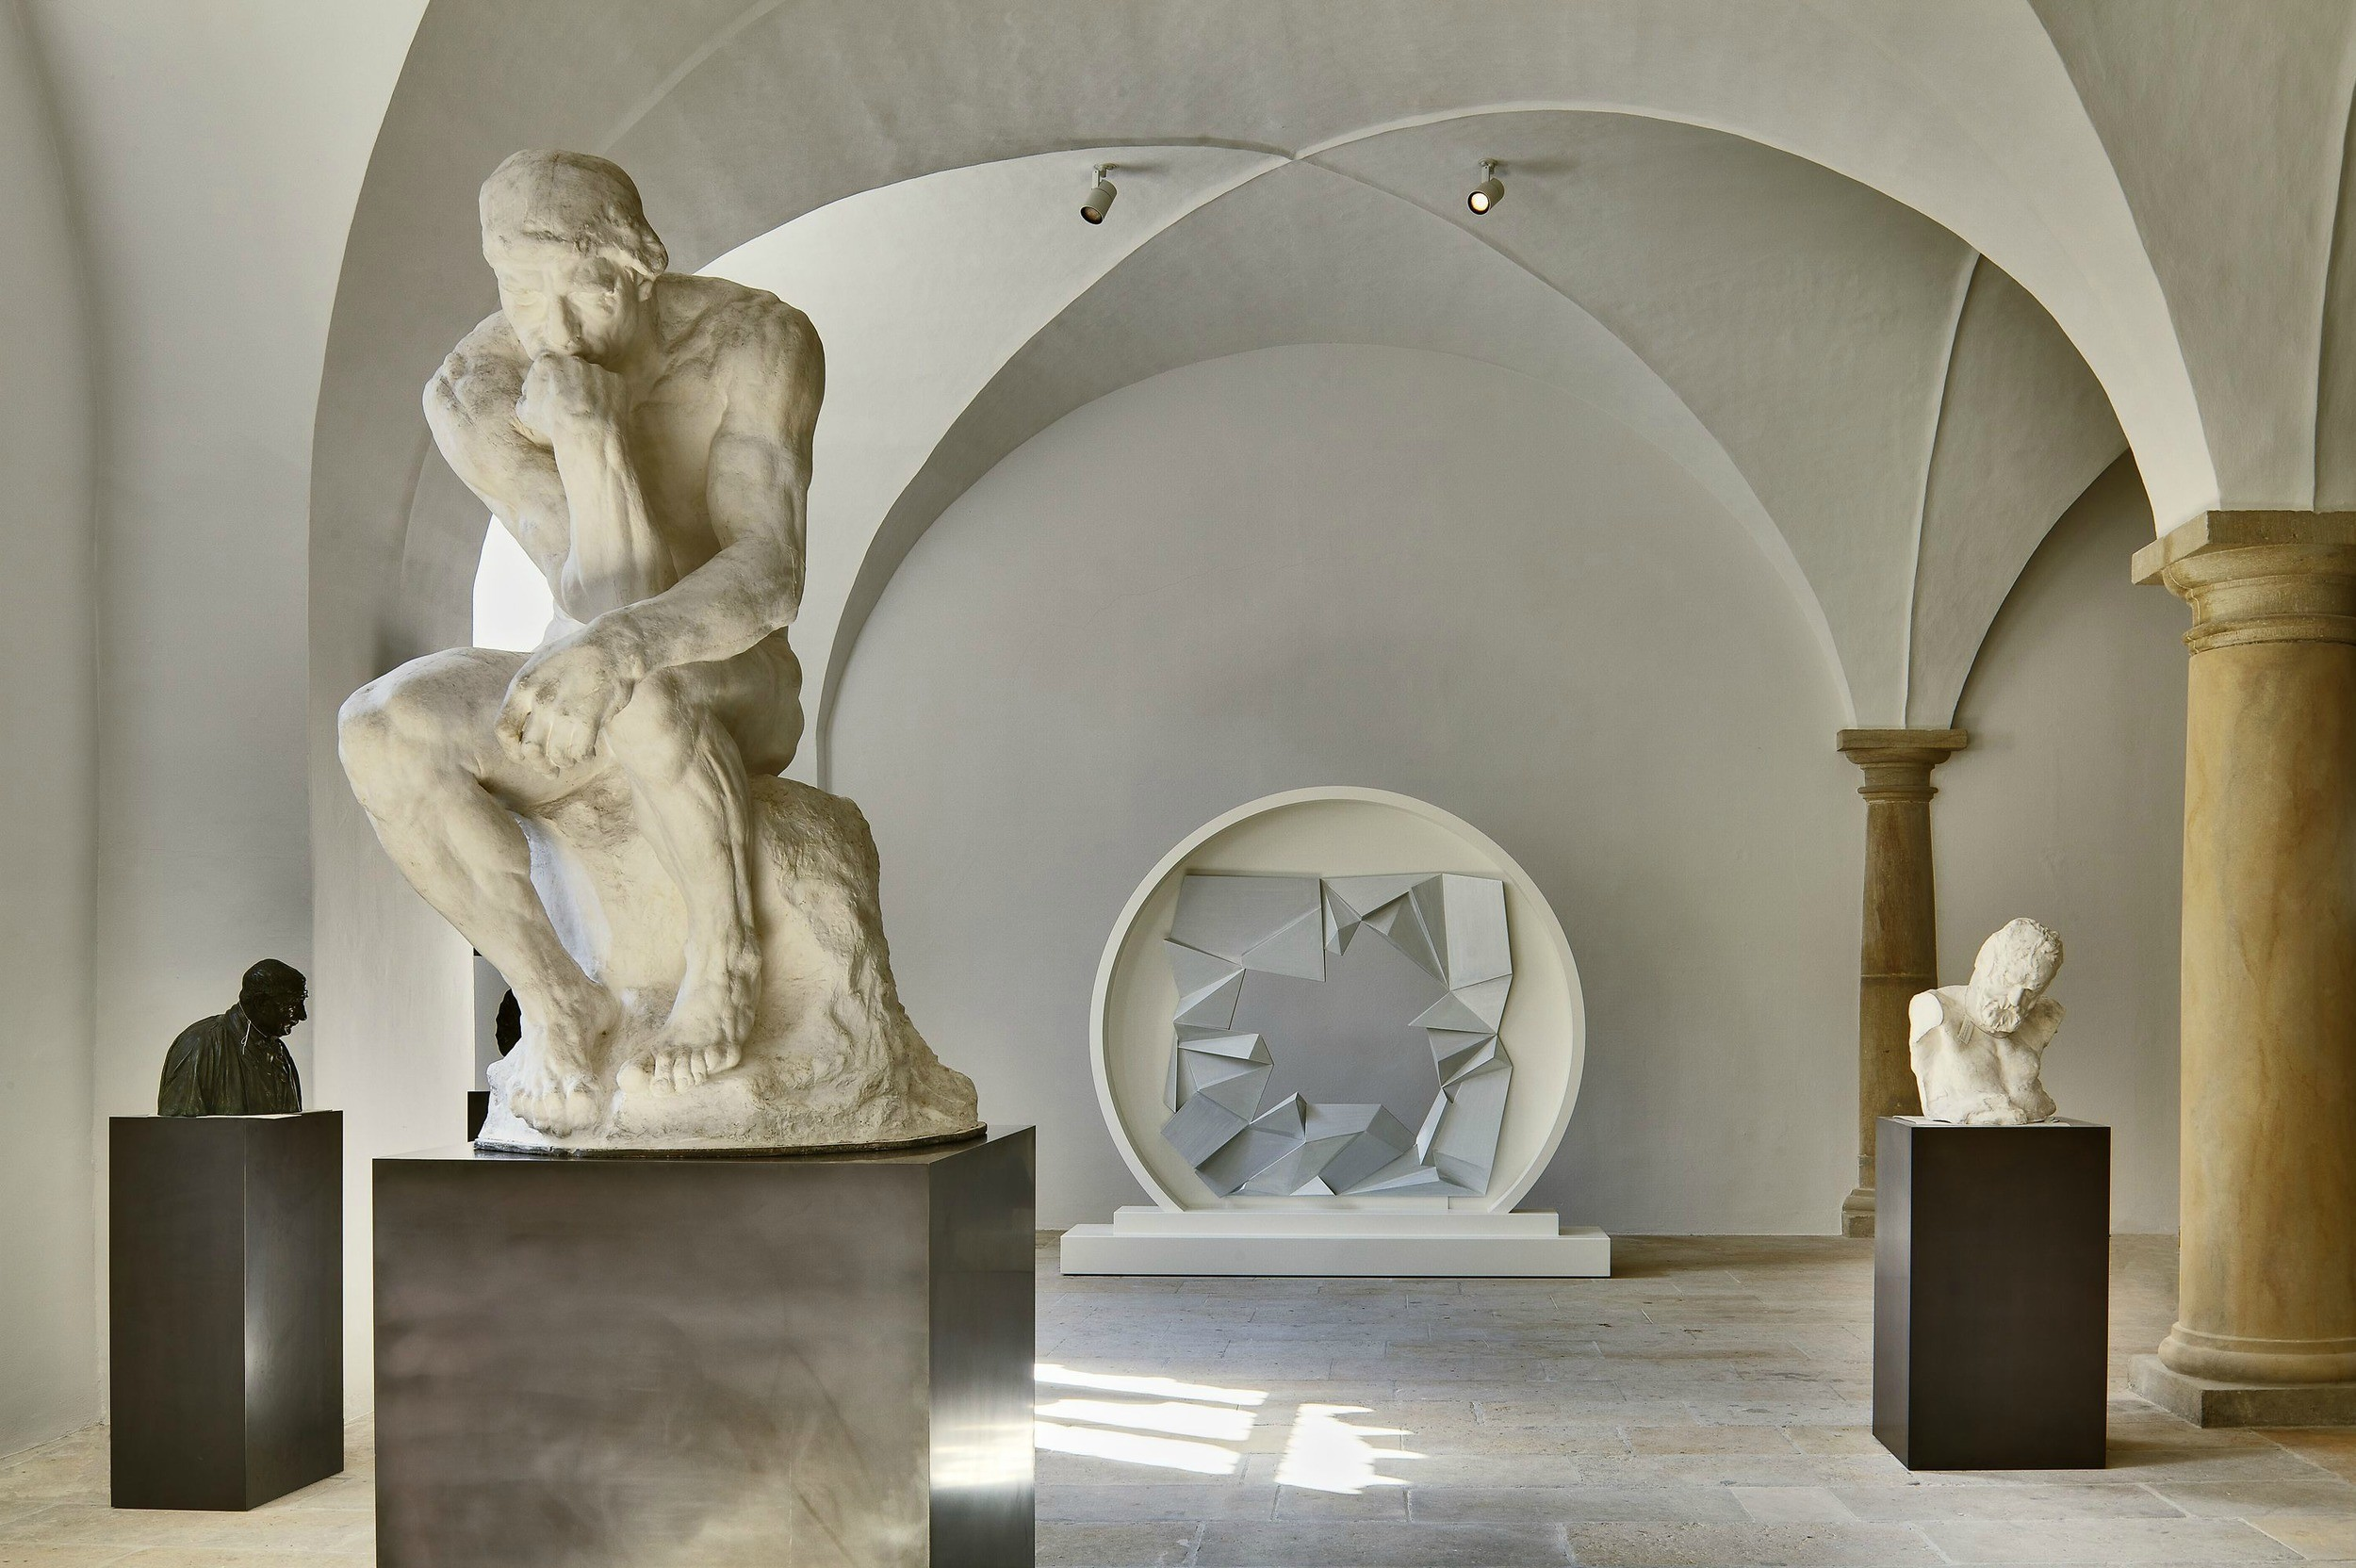 Sculpture Hall at Albertinum Dresden with The Thinker by Rodin Photo David Brandt